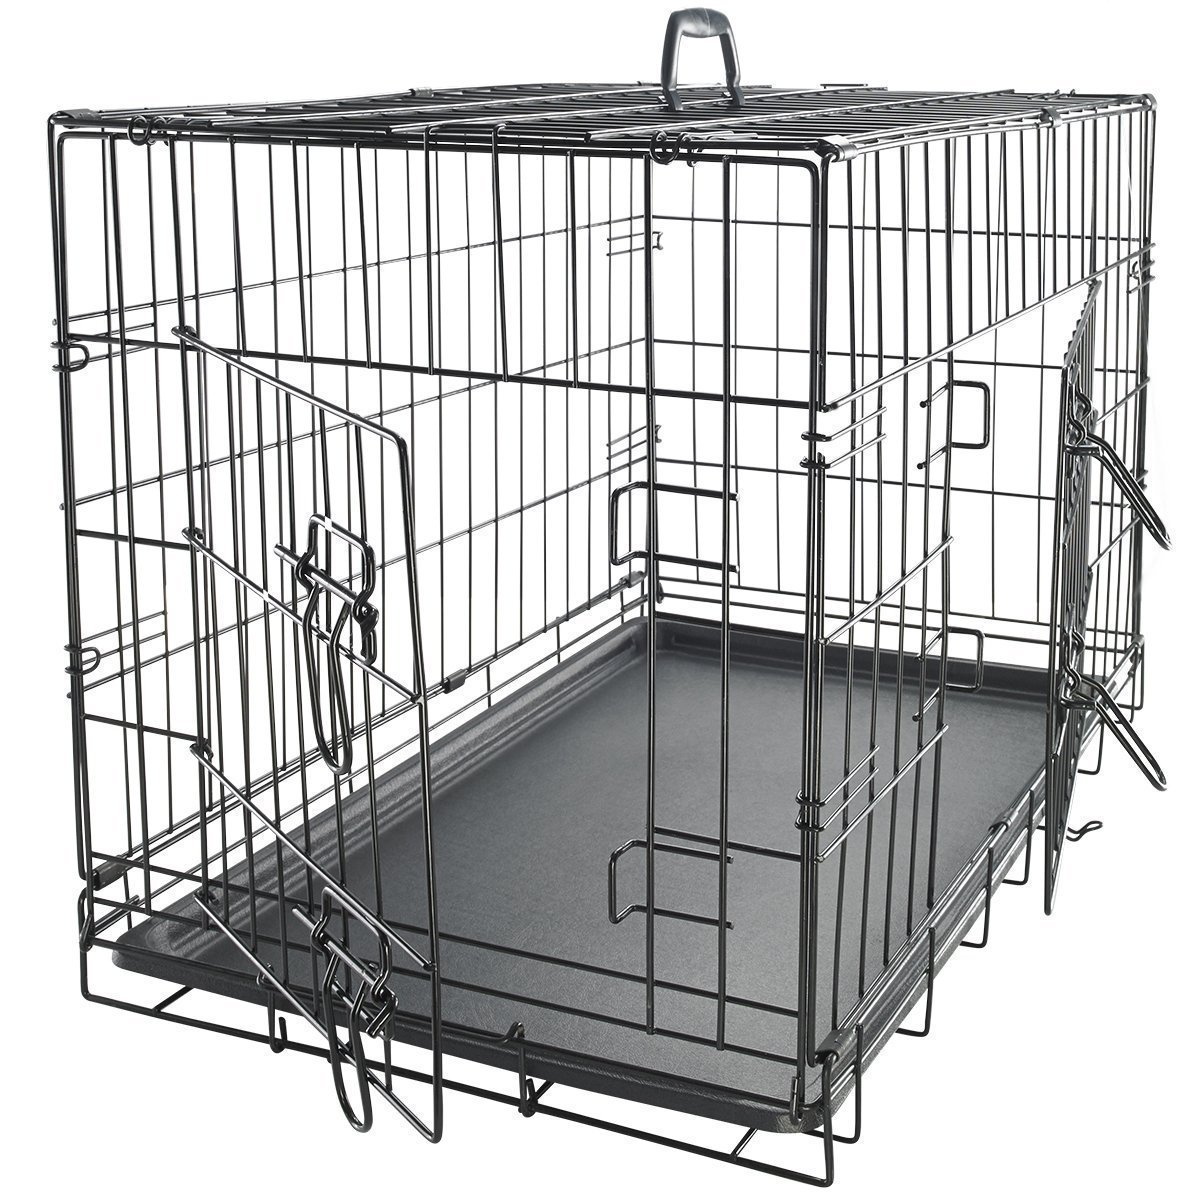 Paws & Pals 36'' XL Dog Crate, Double-Doors Folding Metal w/ Divider & Tray 36'' x 22'' x 25'' 2016 Newly Designed Model